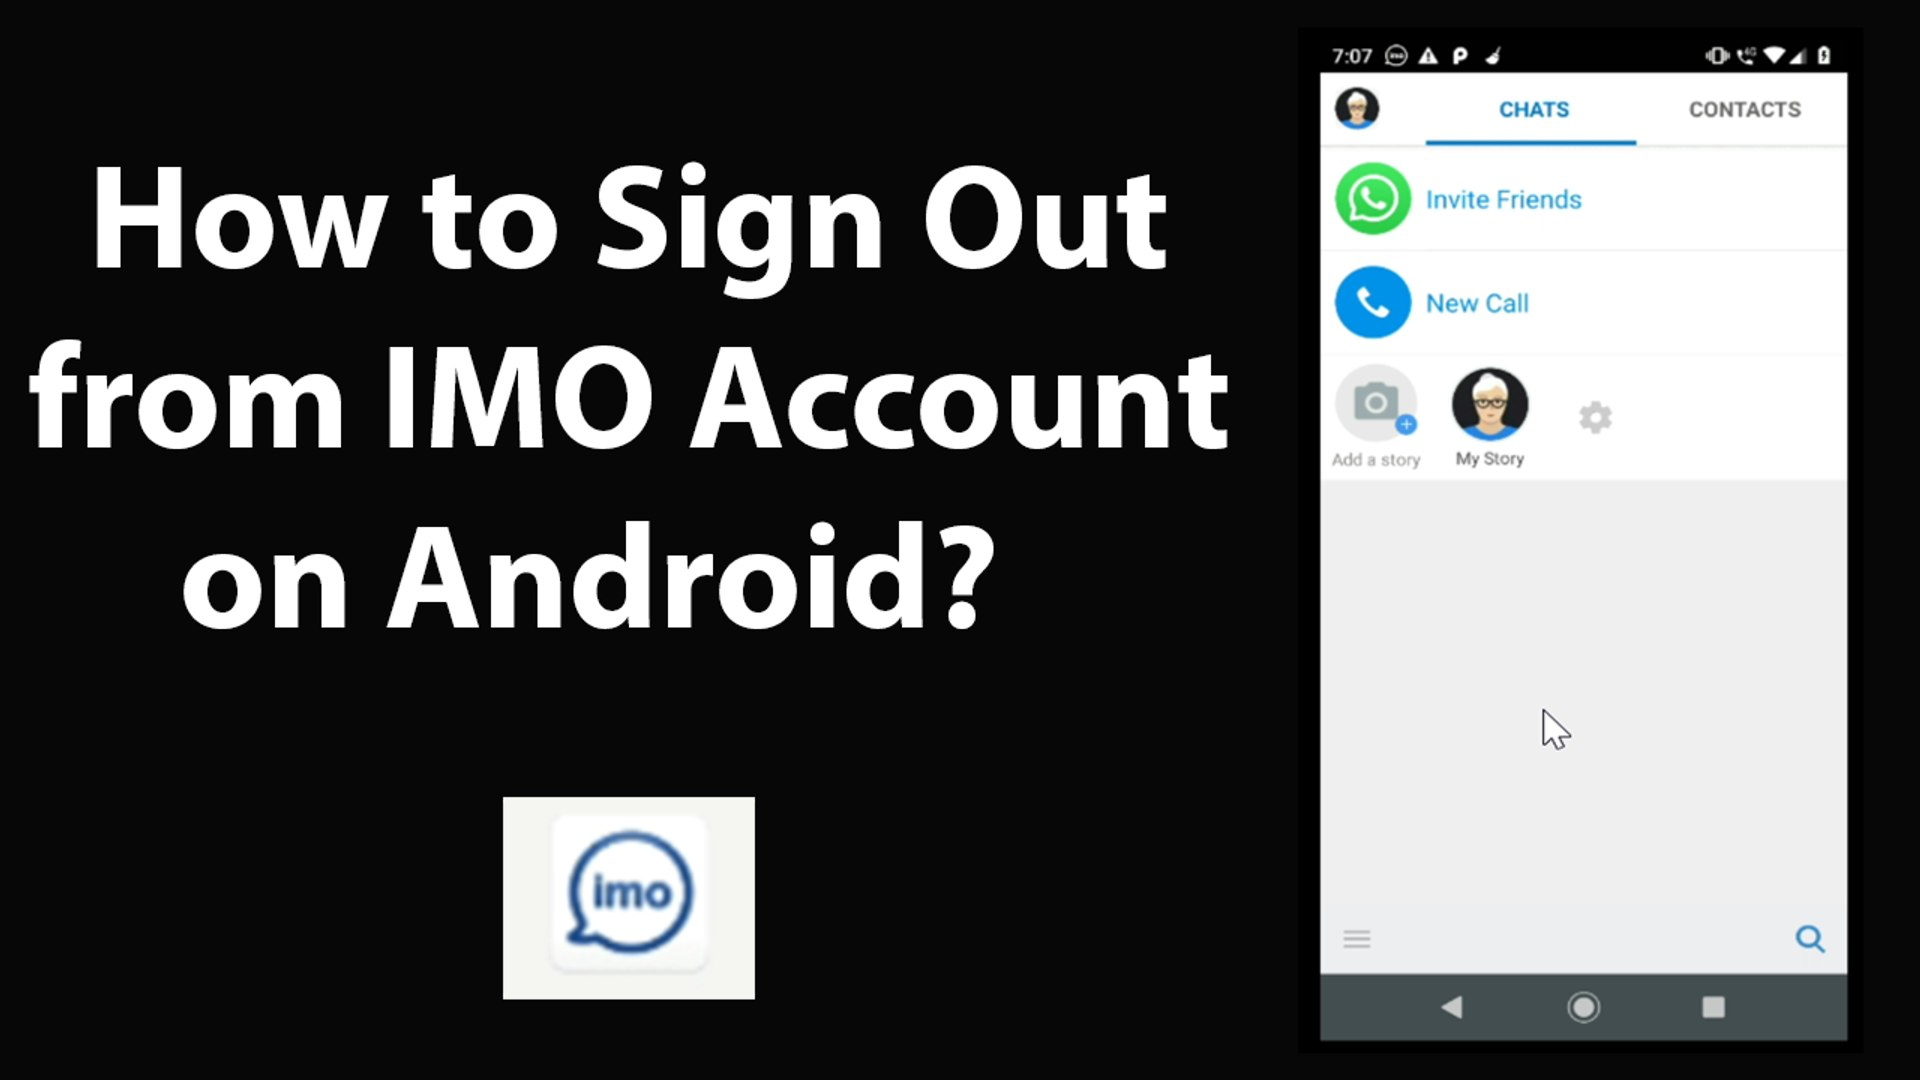 How to Sign Out from IMO Account on Android?